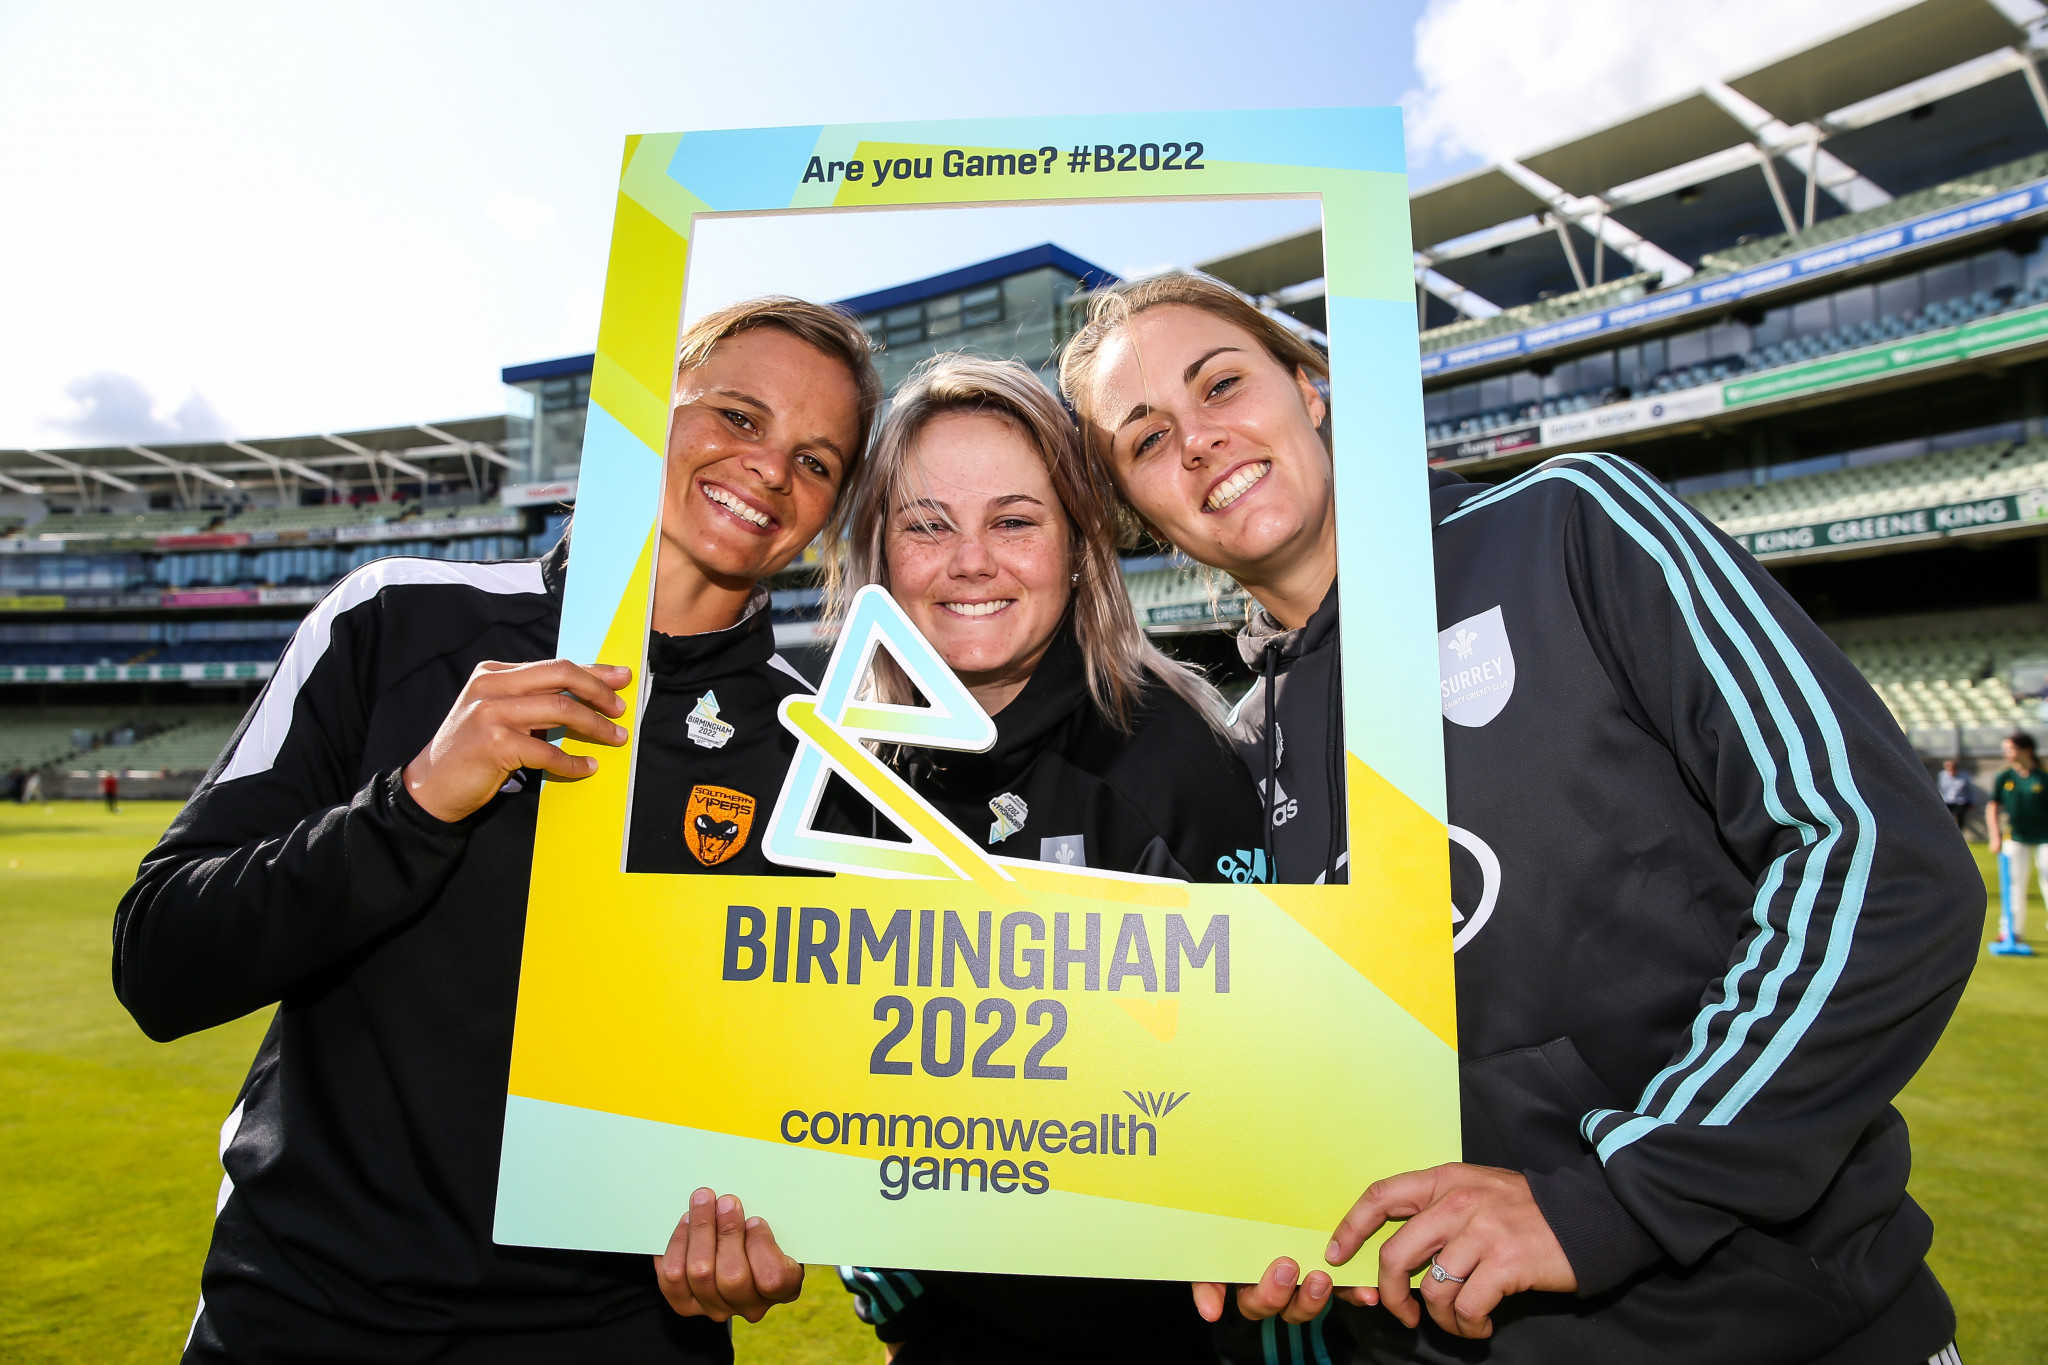 Birmingham City Council is hoping that the 2022 Commonwealth Games will be the first of many international sports events held in the city over the next decade ©Getty Images